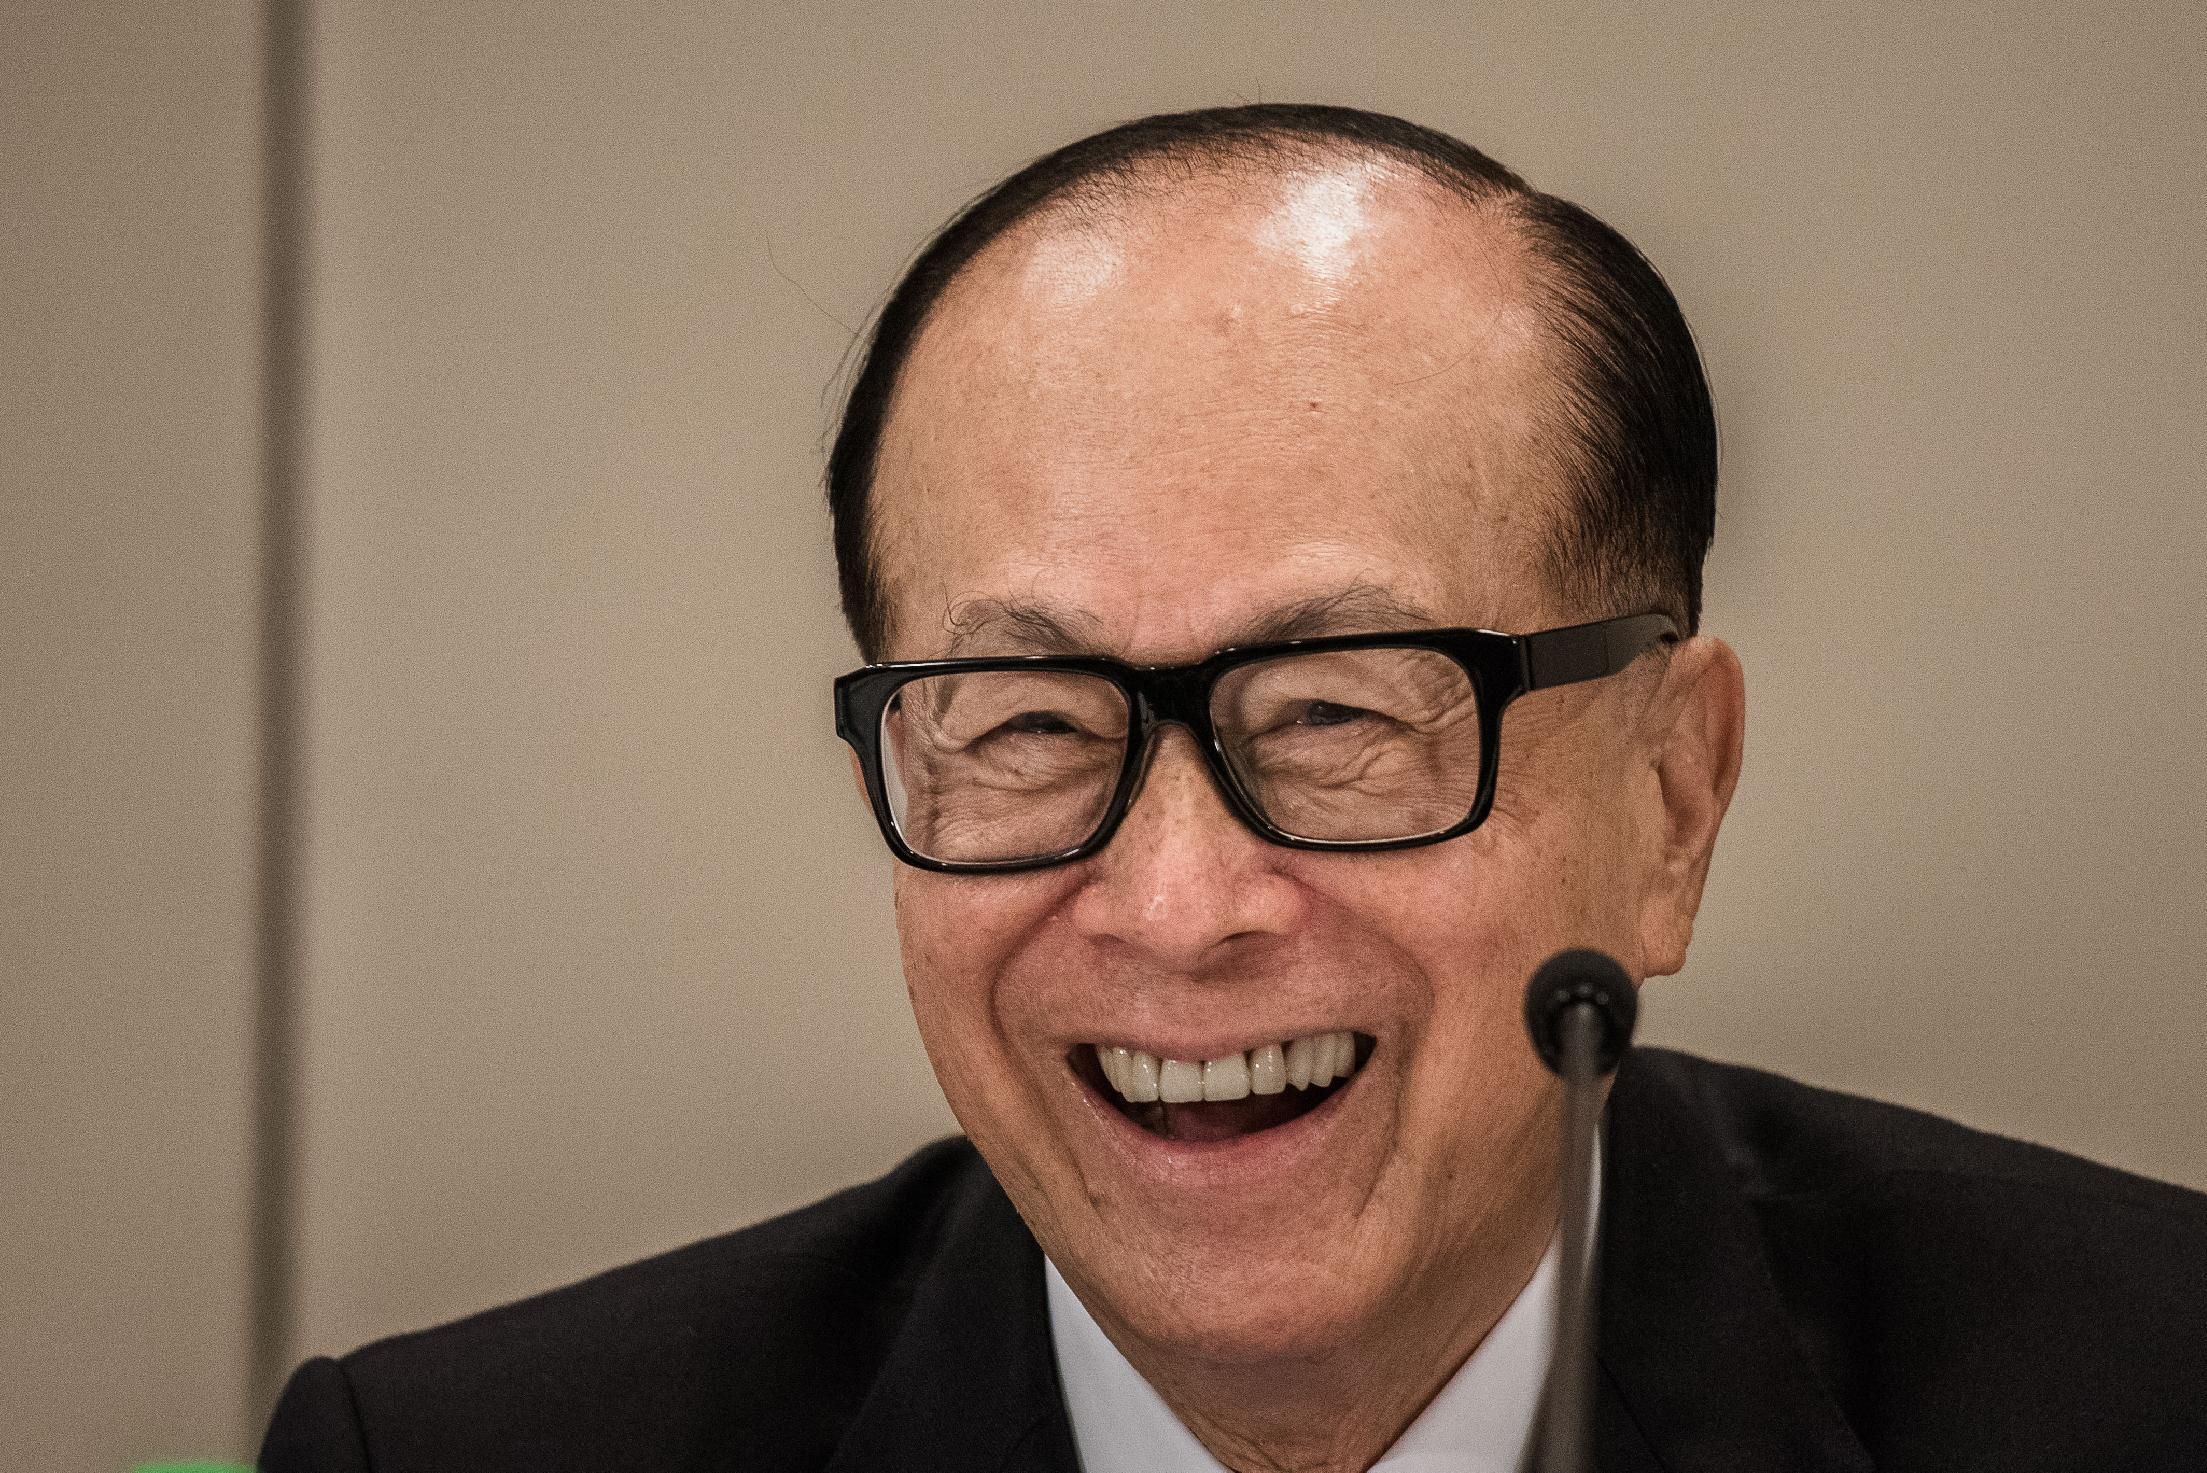 Hong Kong billionaire Li Ka-shing bets on Europe as China slows